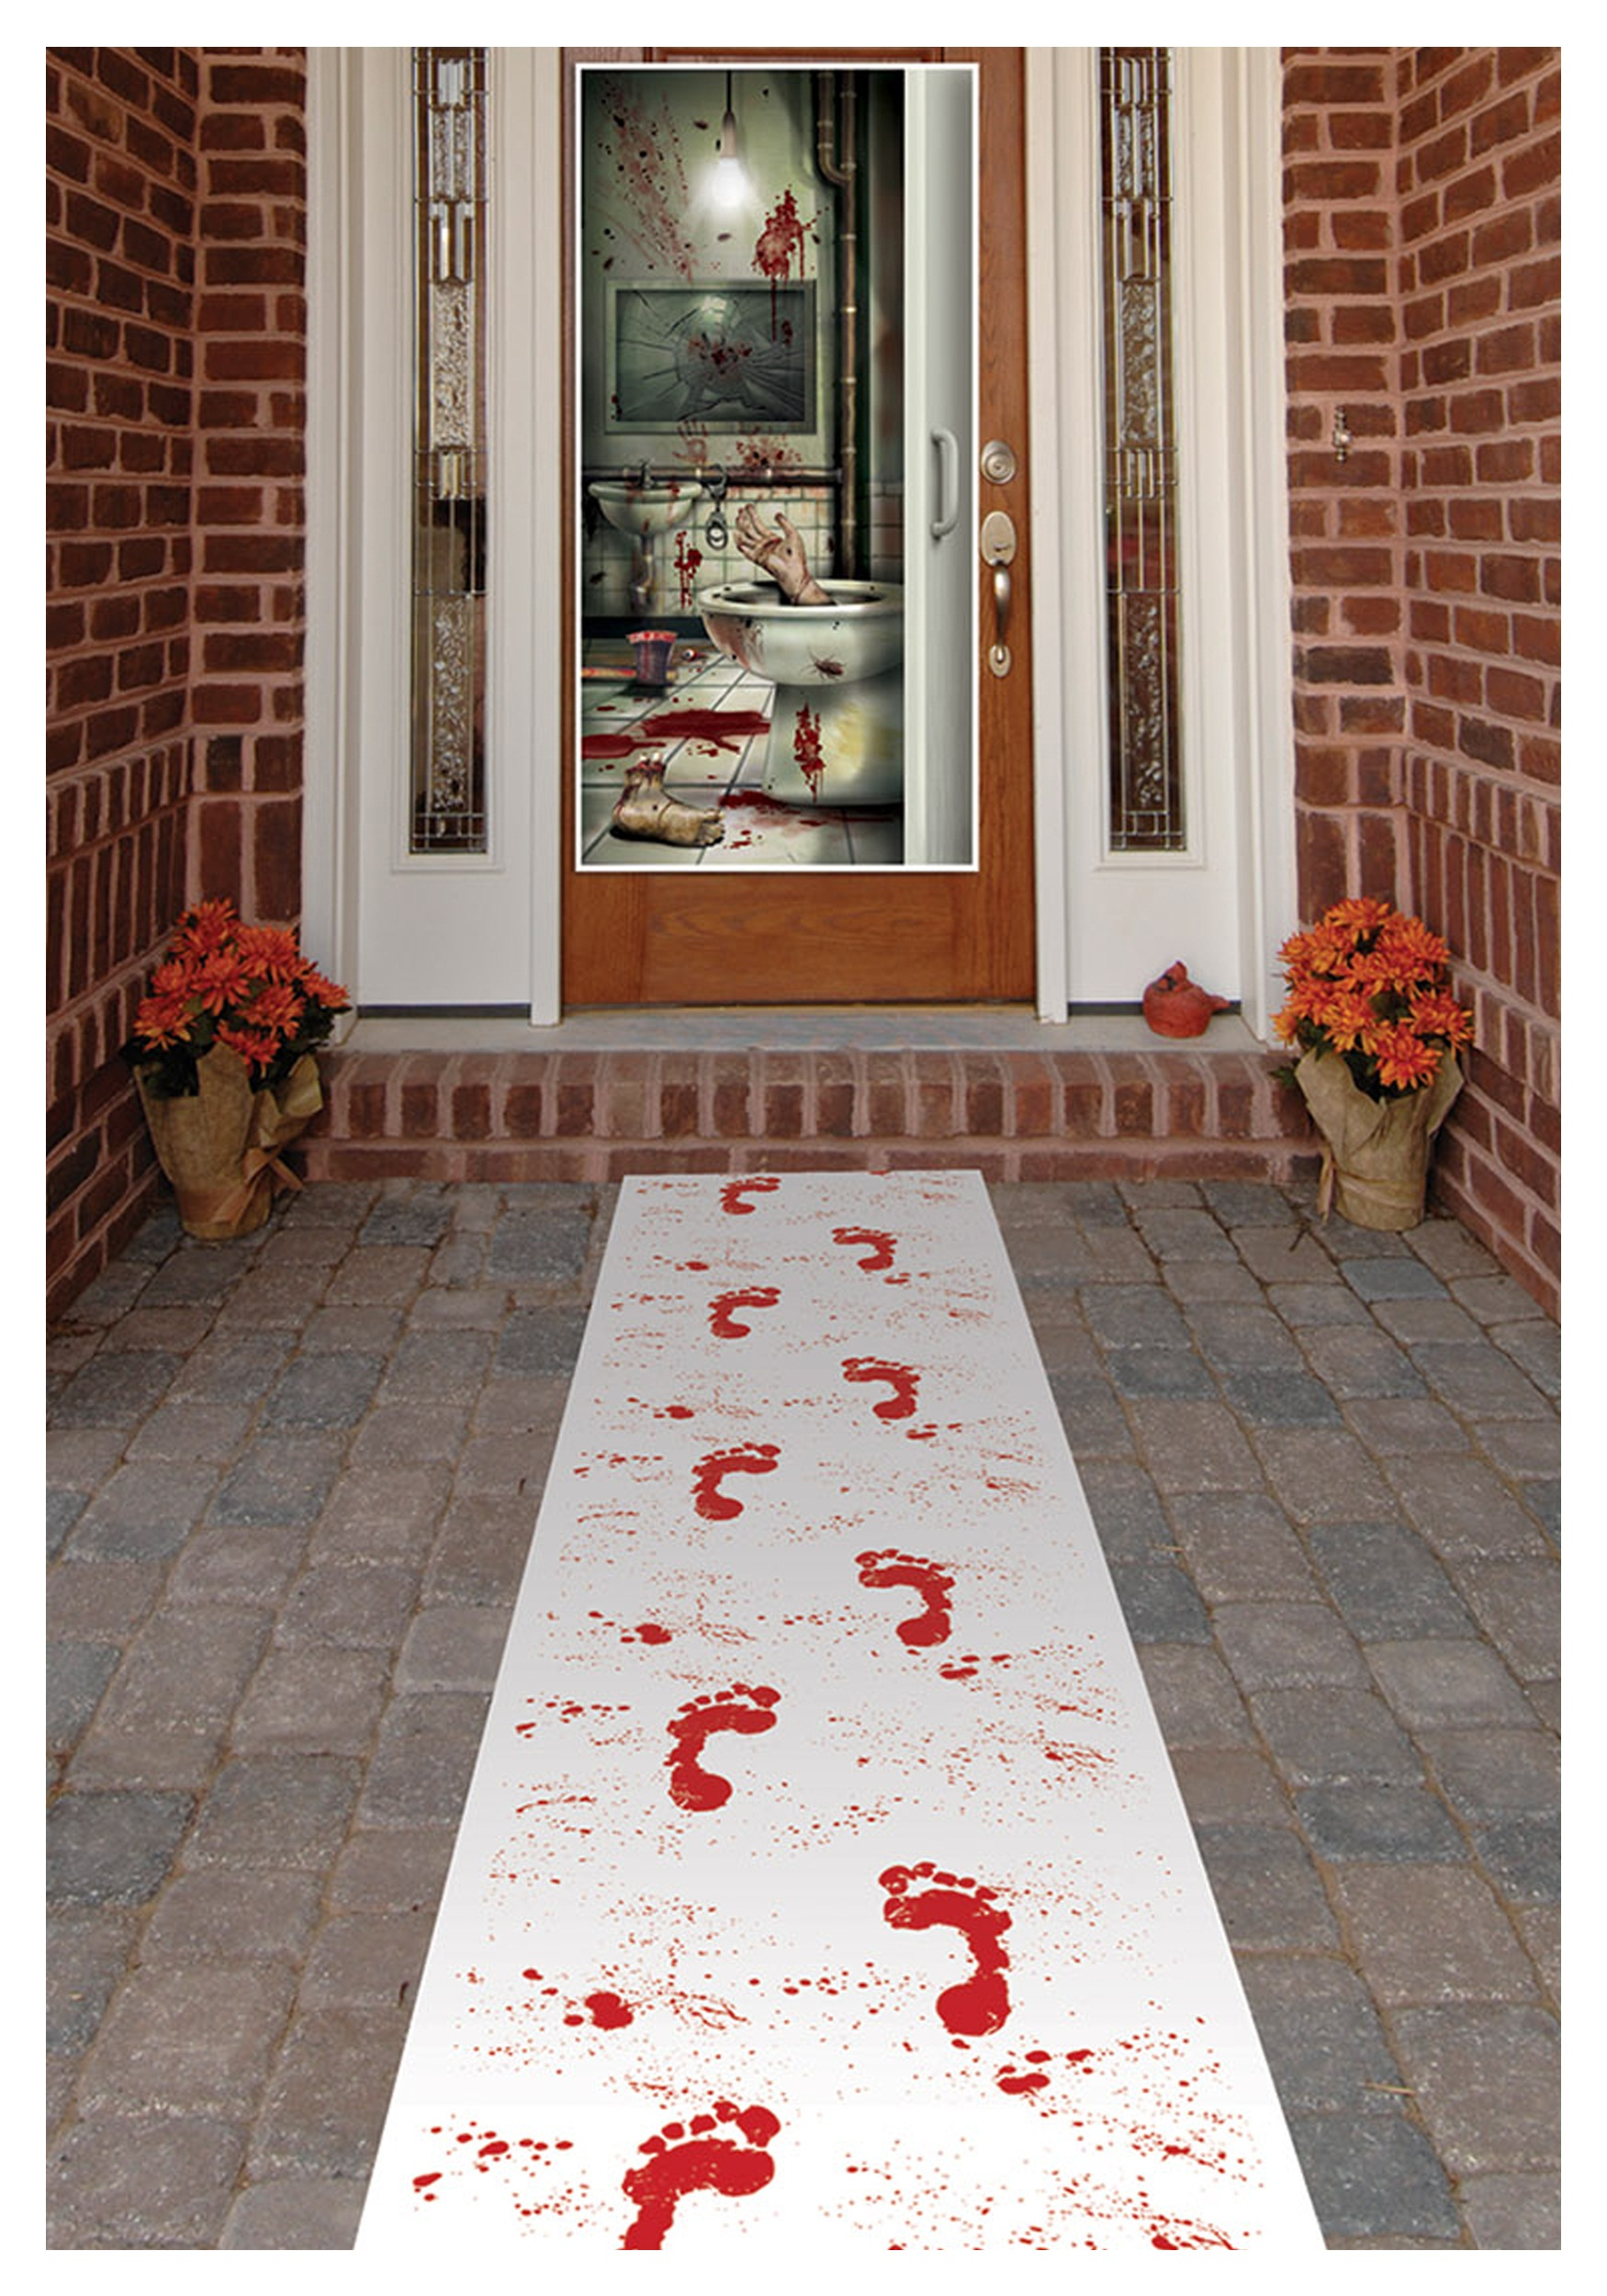 Bloody footprints runner - Faire des decorations d halloween ...